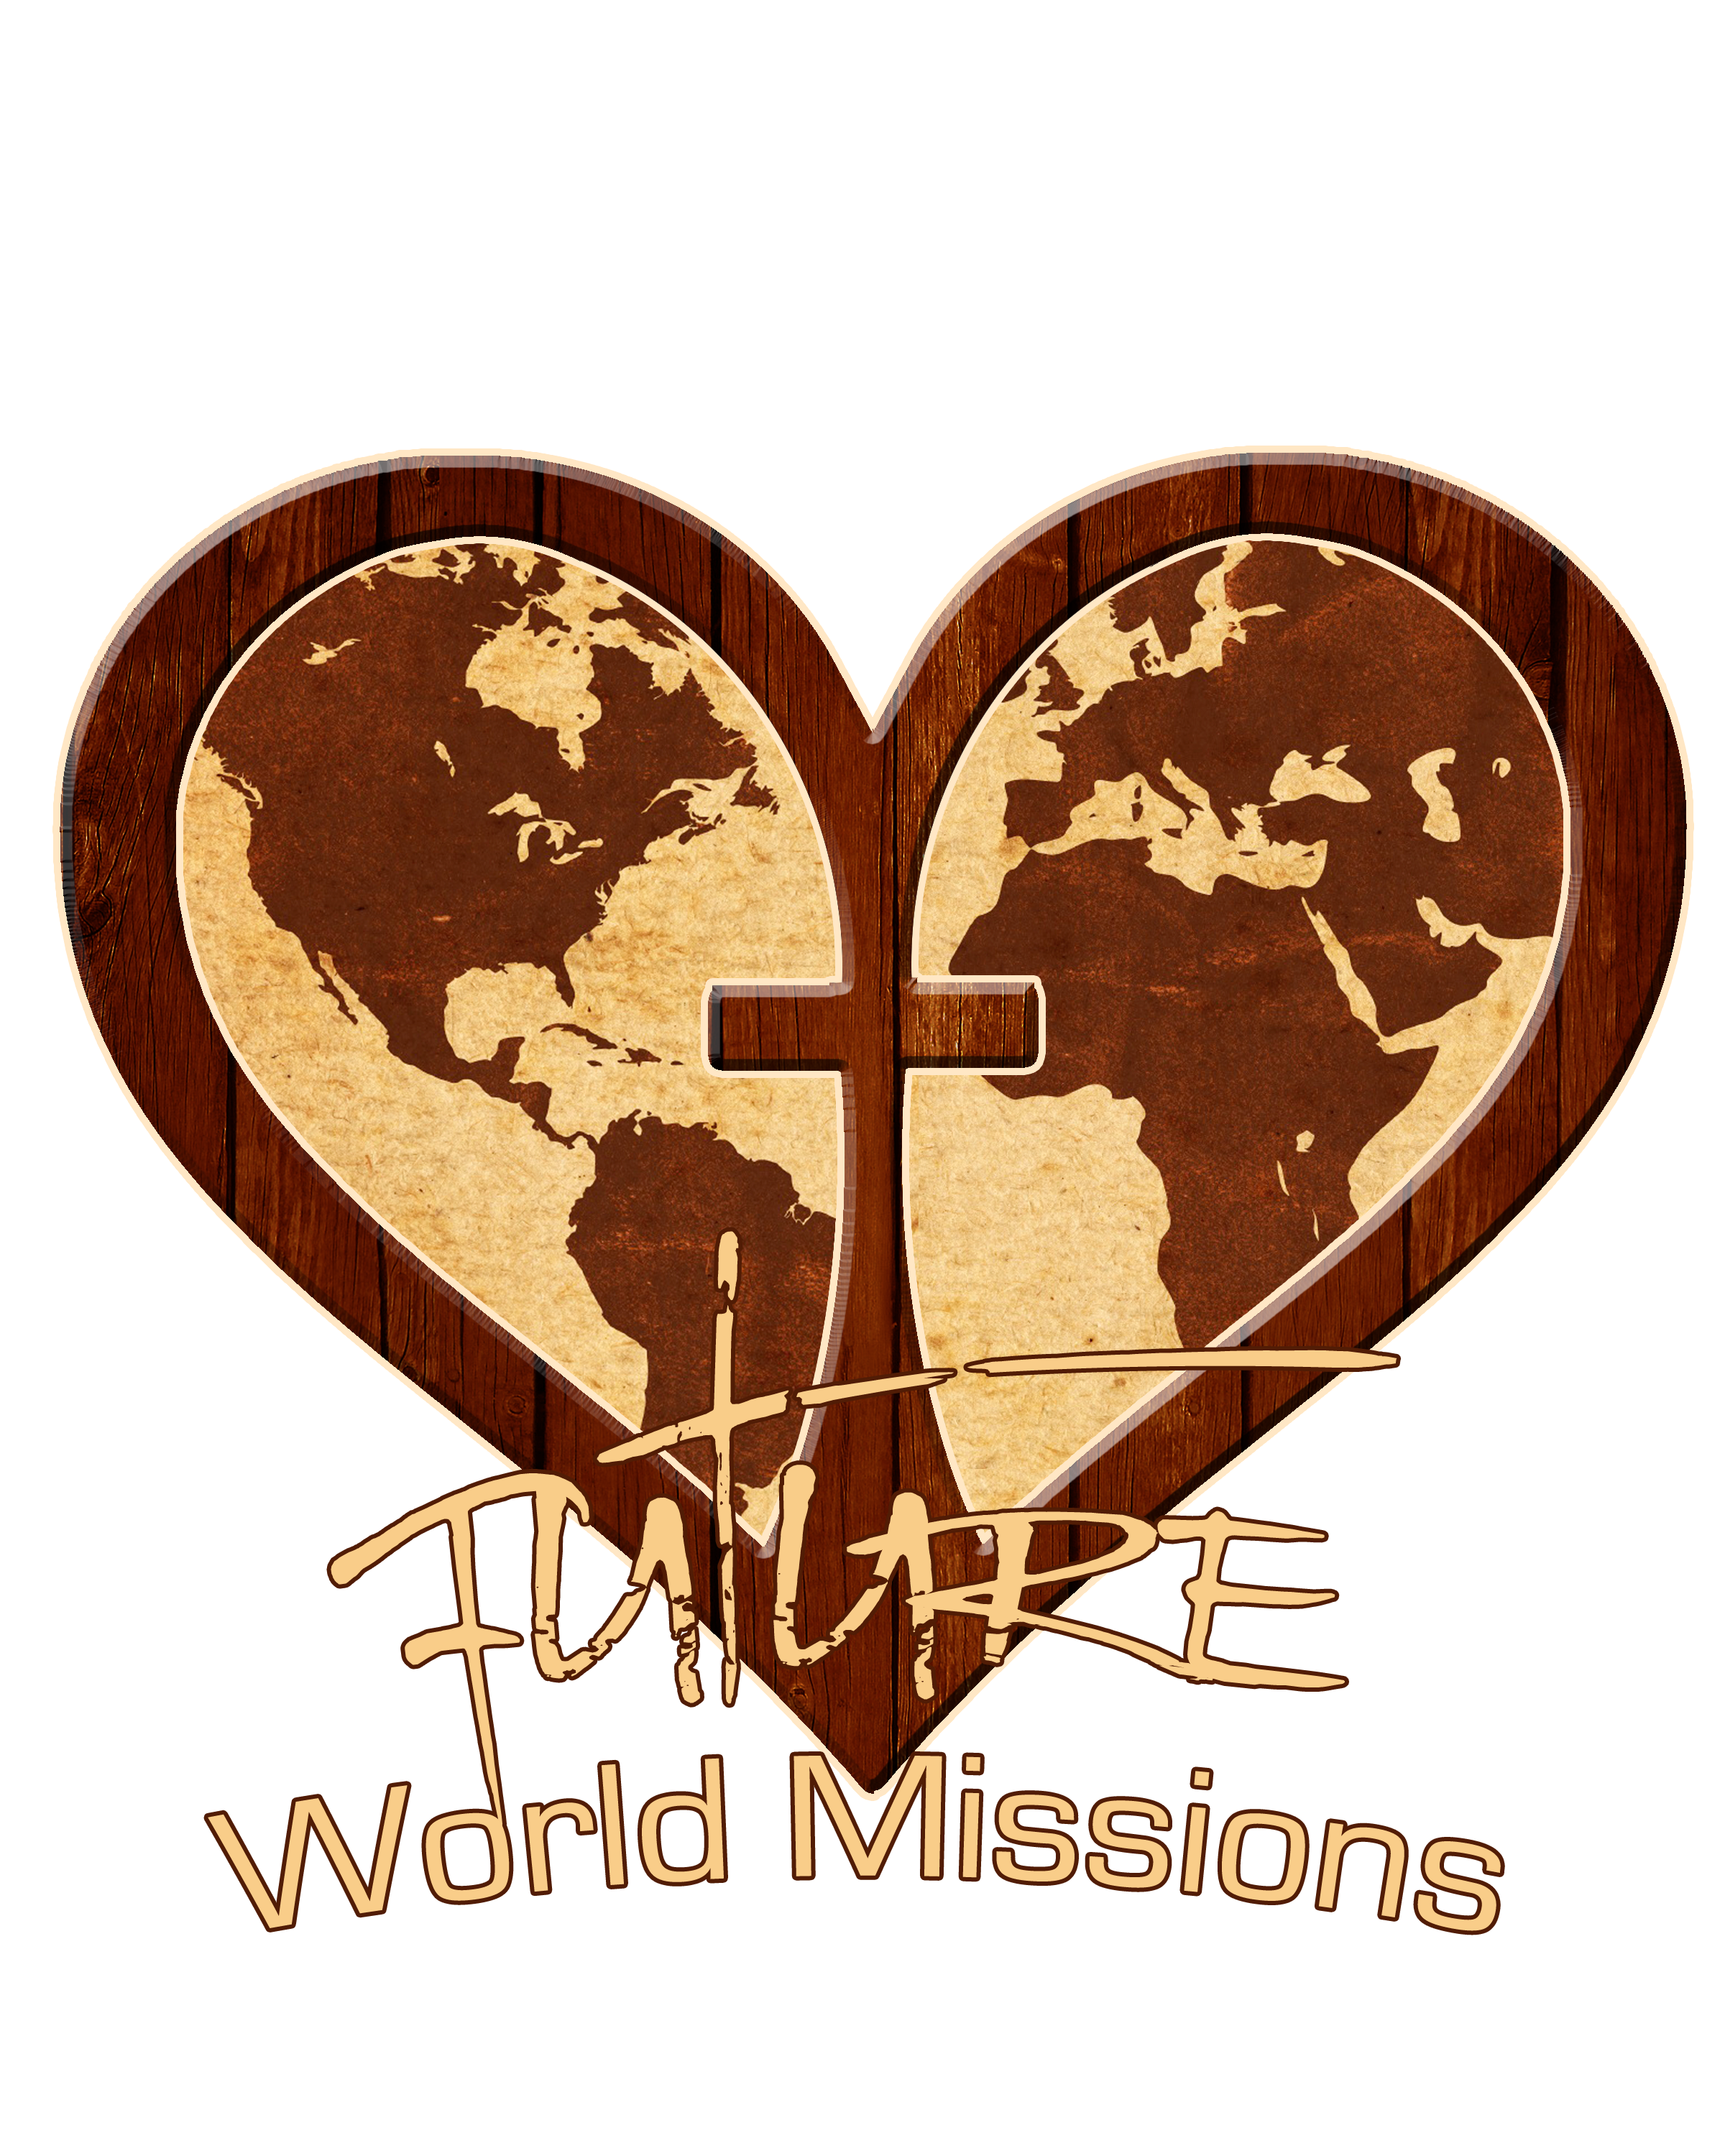 Future giving hope and. Missions clipart world love